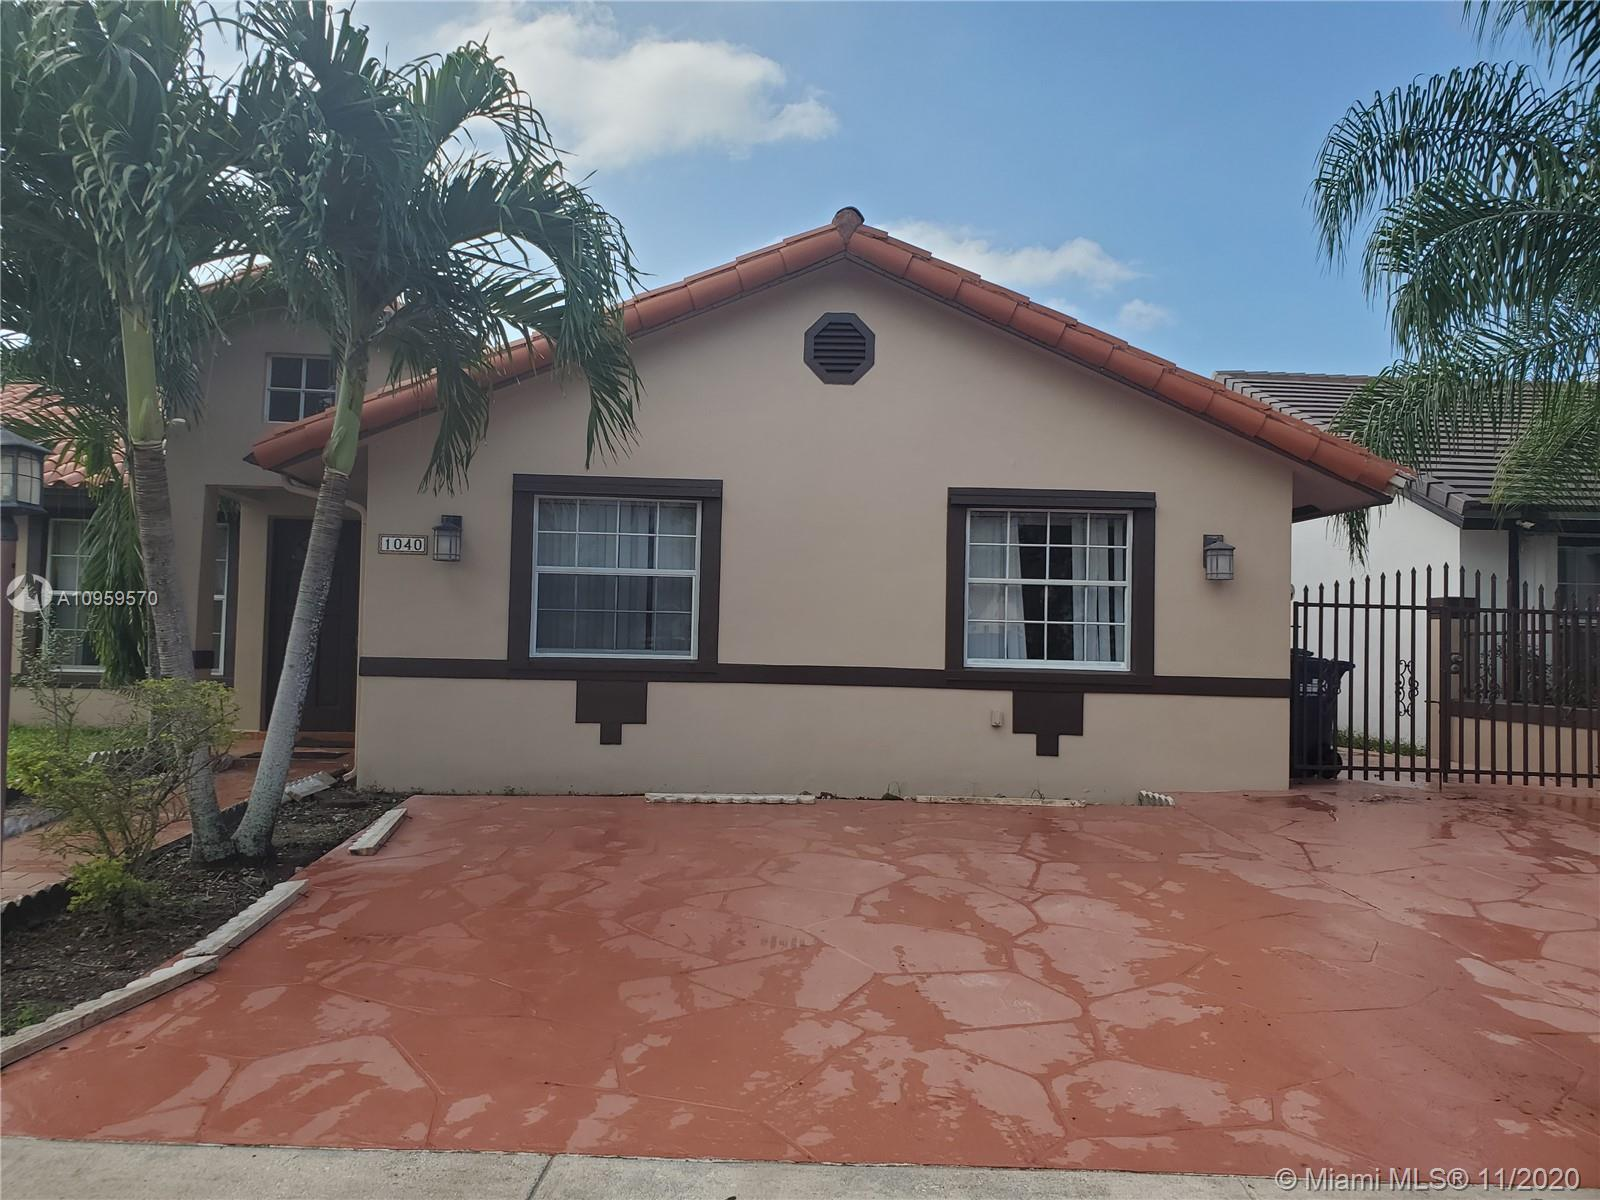 Details for 1040 134th Ave, Miami, FL 33182